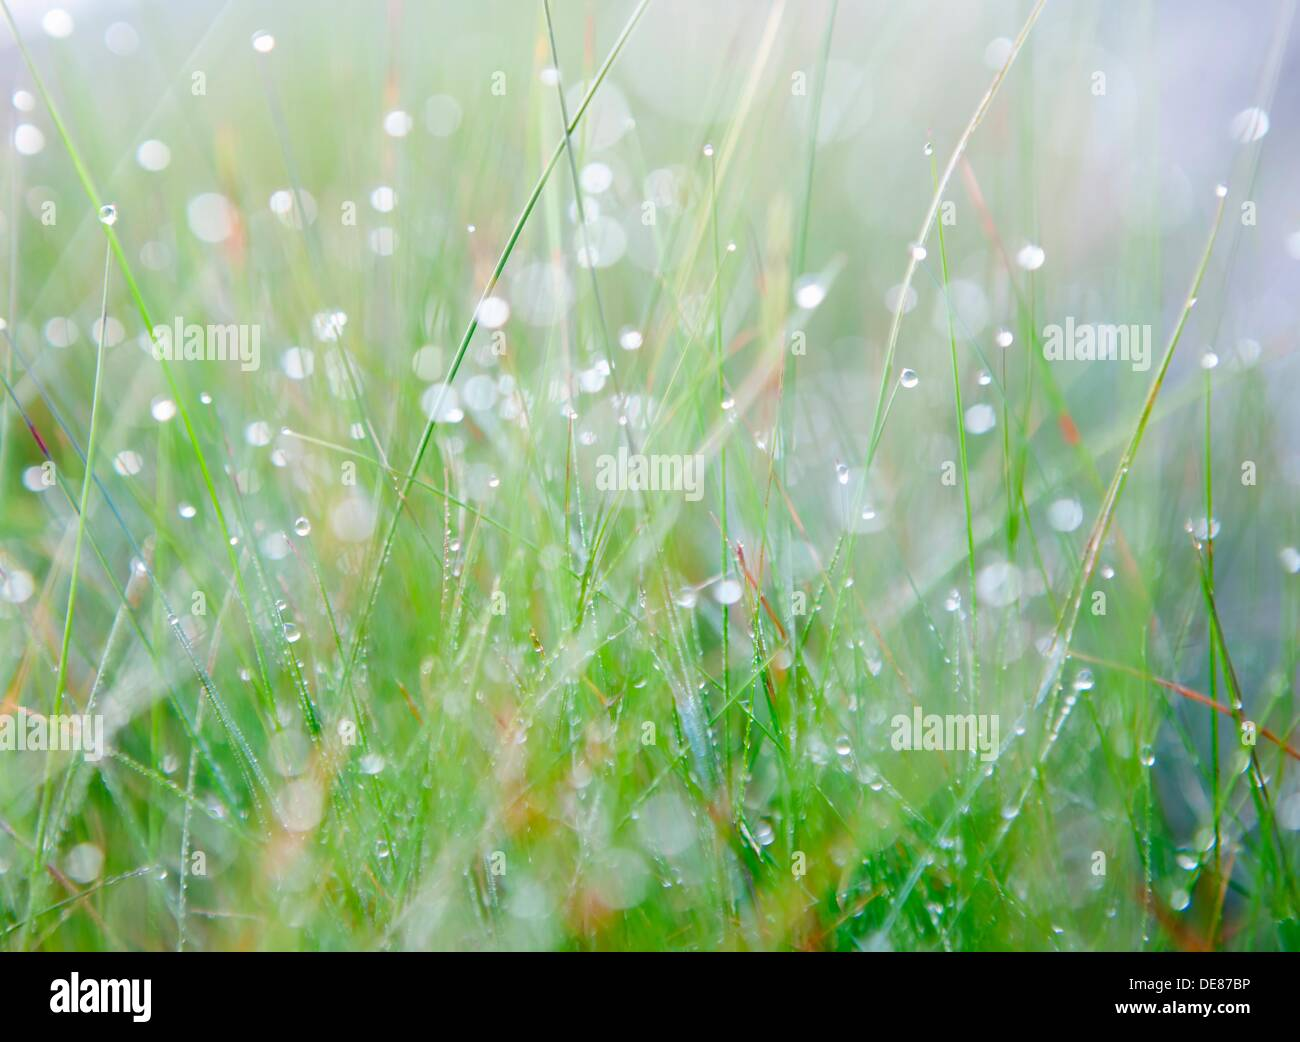 Makro shot of grass with early morning dew. Shallow DOF. - Stock Image